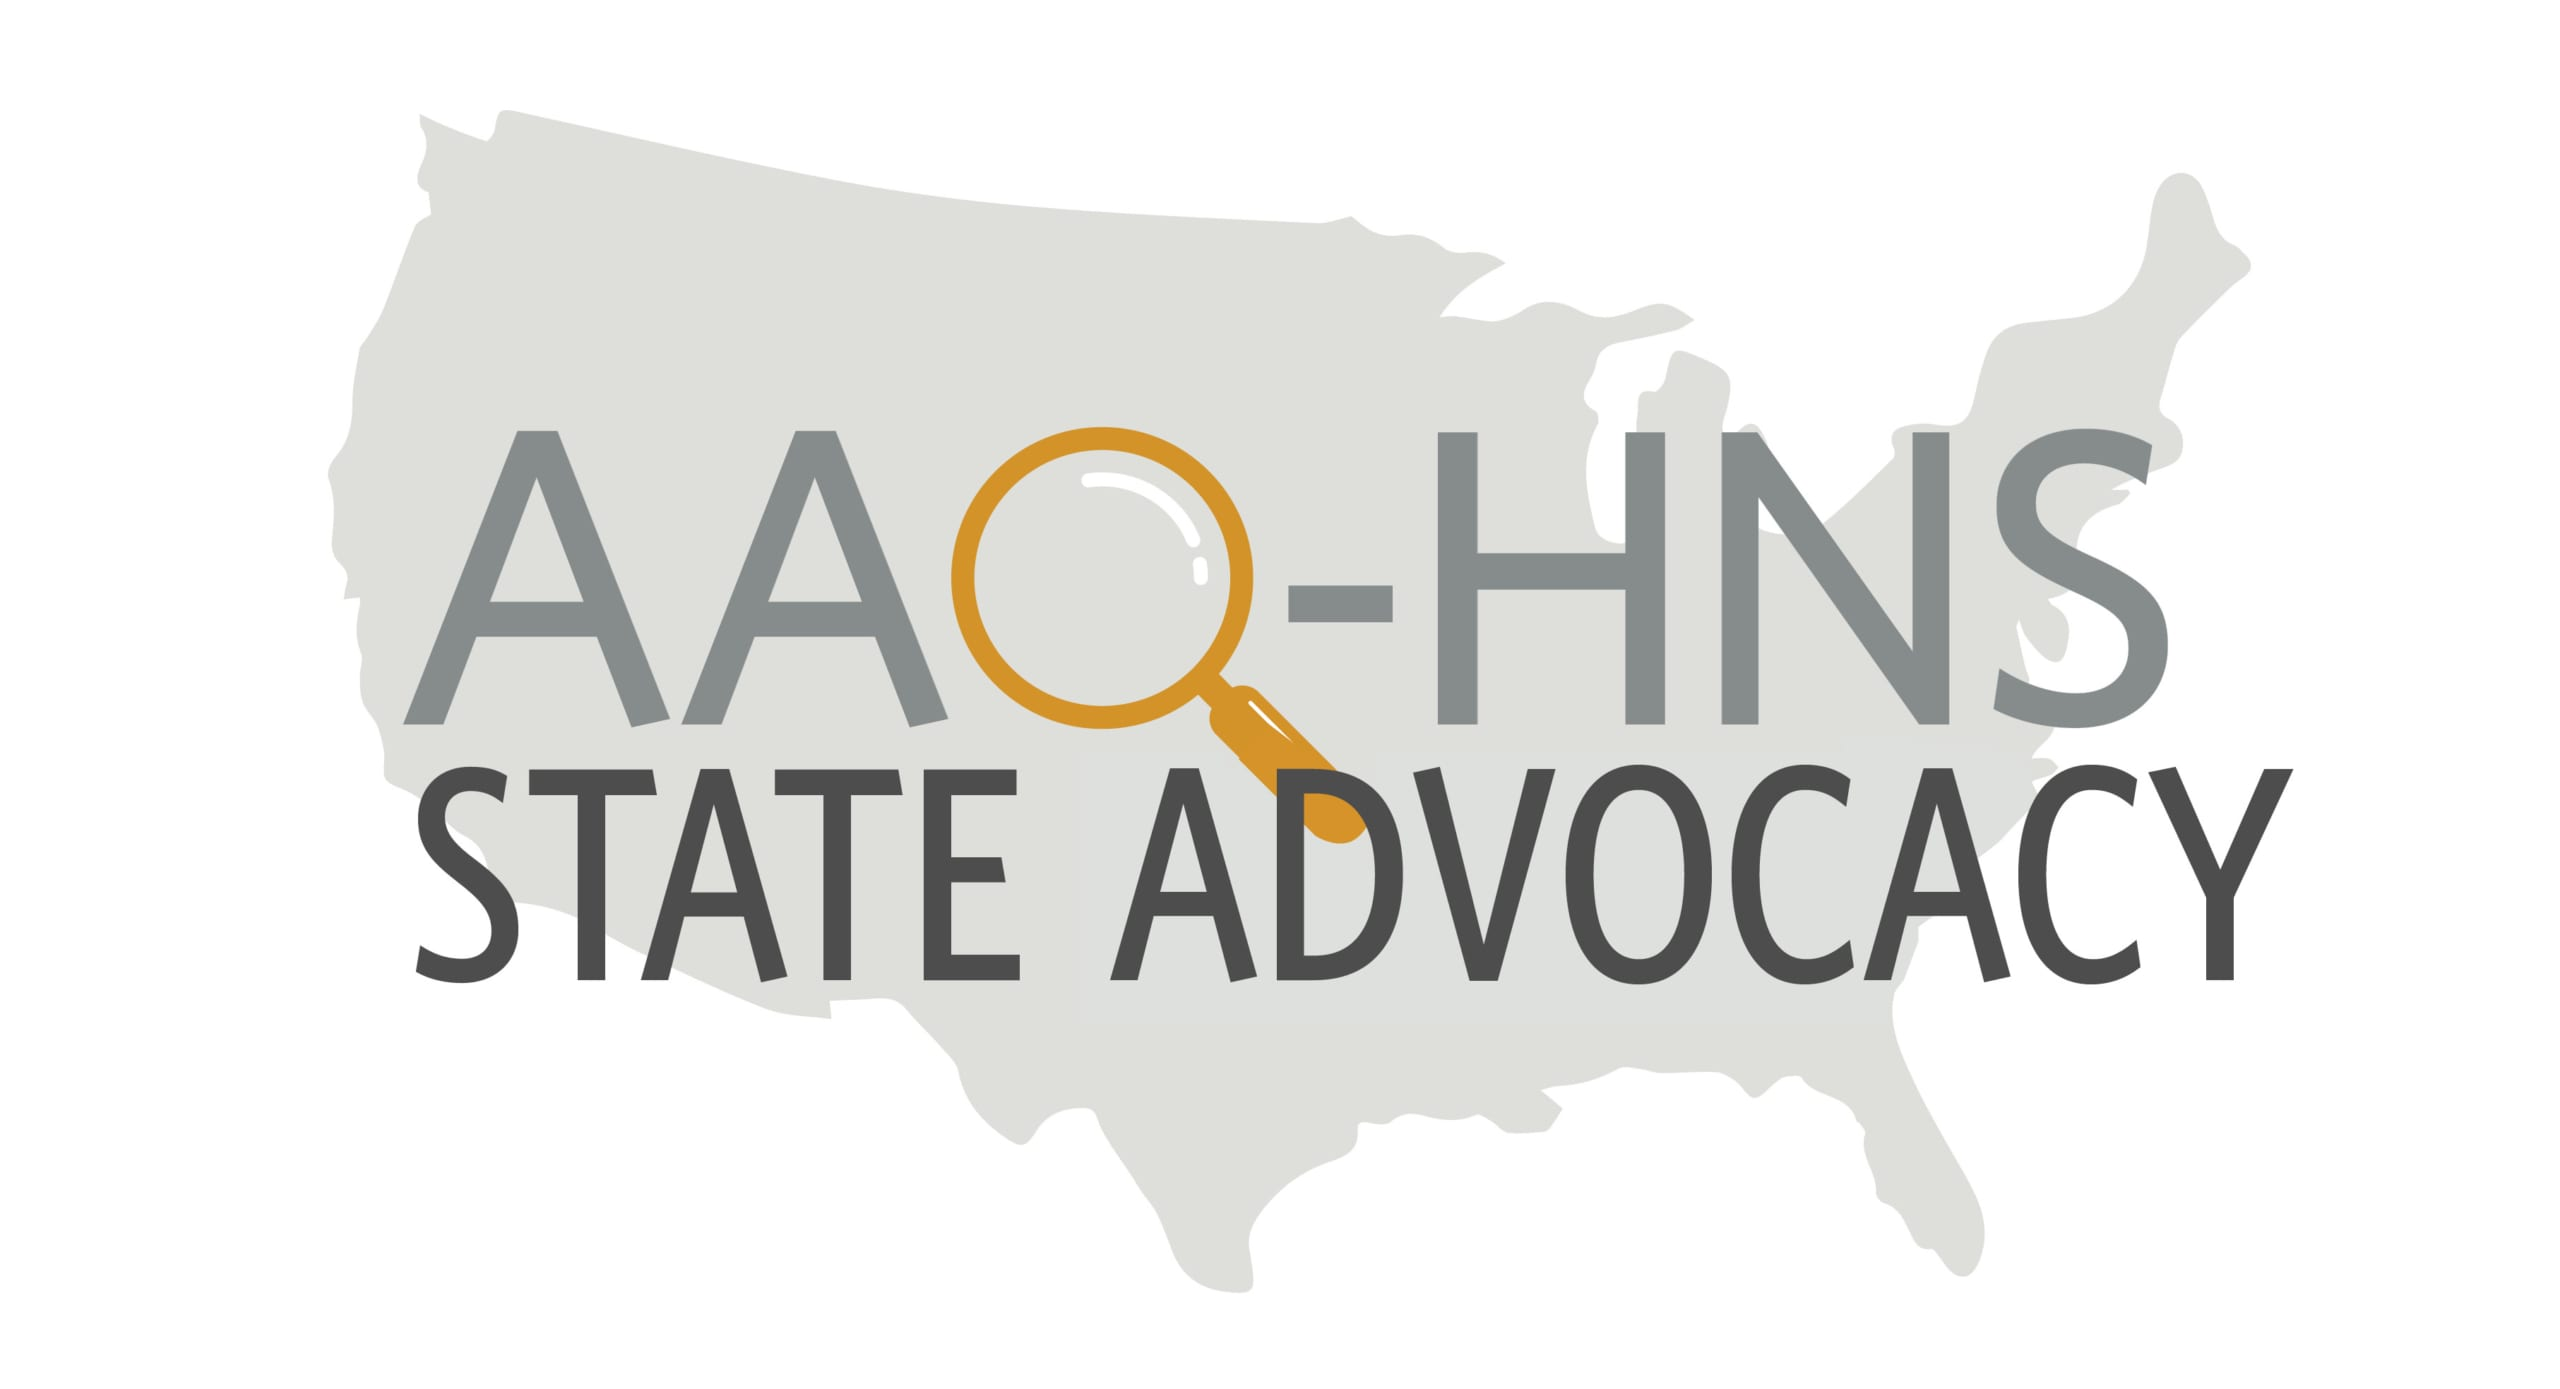 AAO-HNS State Advocacy Logo